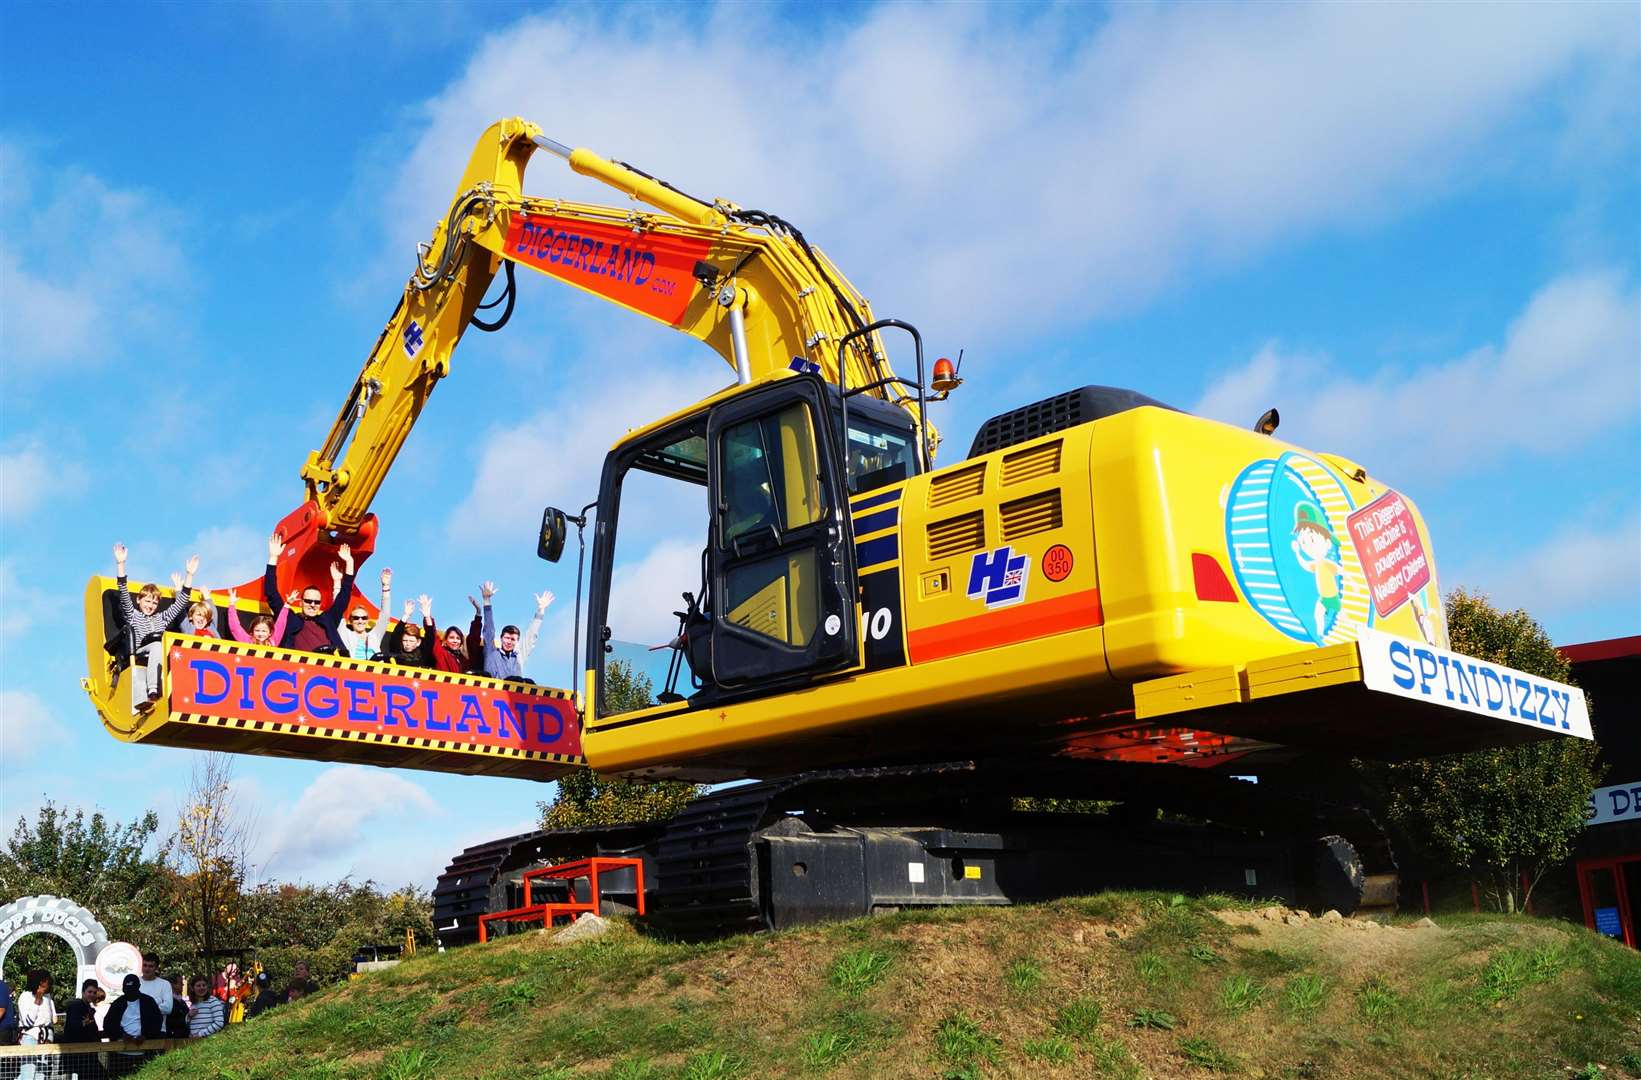 There's lots to do at Diggerland this summer